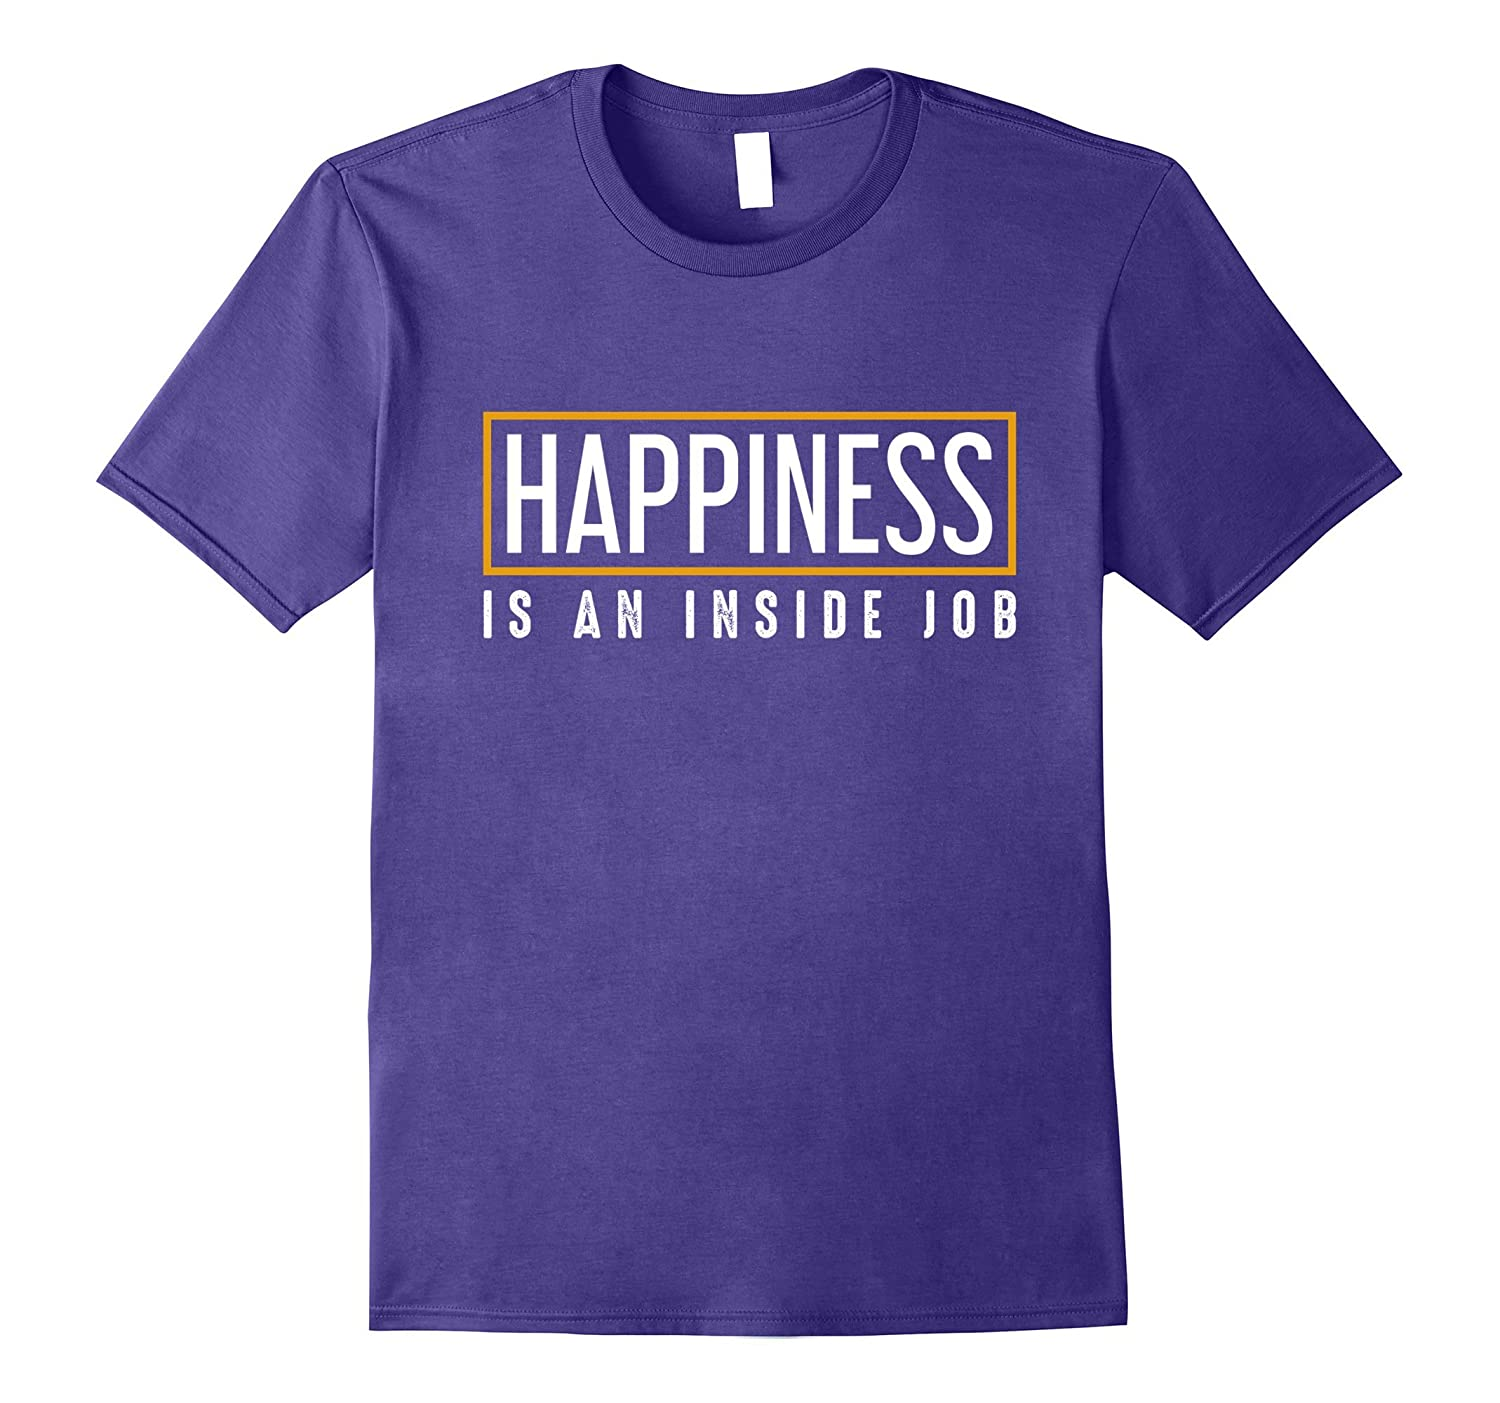 Happiness is an Inside Job Motivational Tee Shirt-TJ